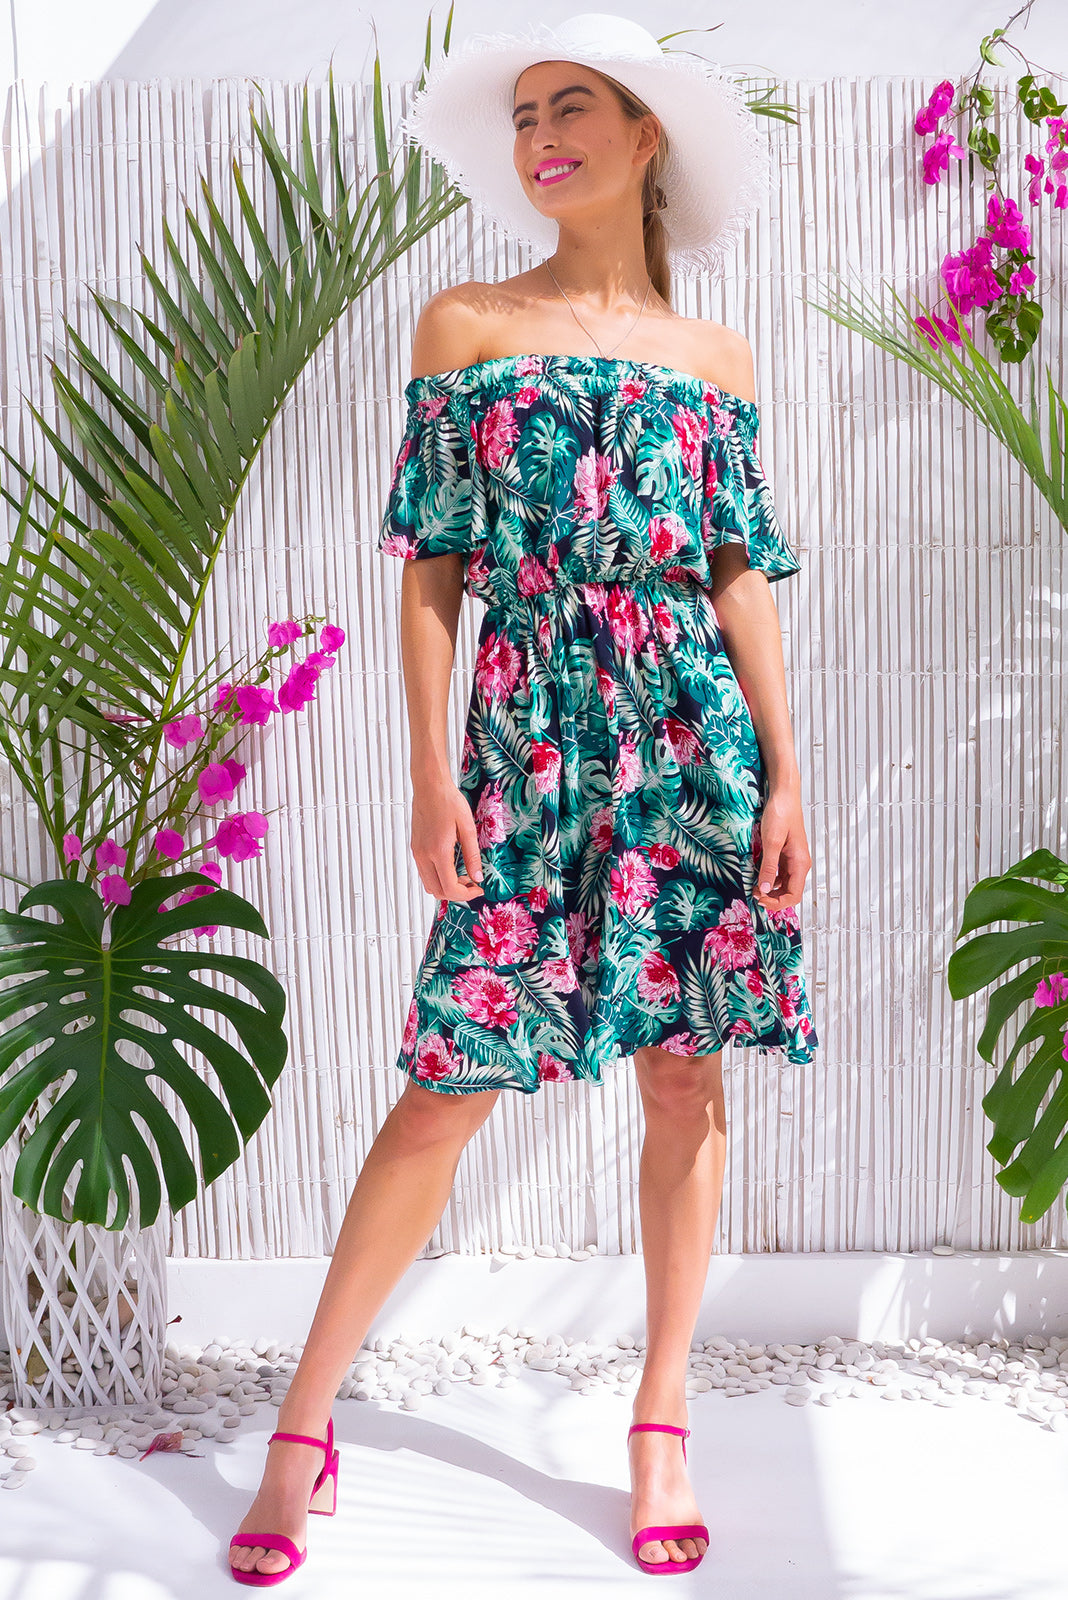 Roxie Night Palms Mini Dress, bohemian summer style, 100% viscose, soft elastic ruching gently holds dress across shoulders, side pockets, elastic waist, navy base with fuchsia, soft pink, teal and soft green floral and palm print.